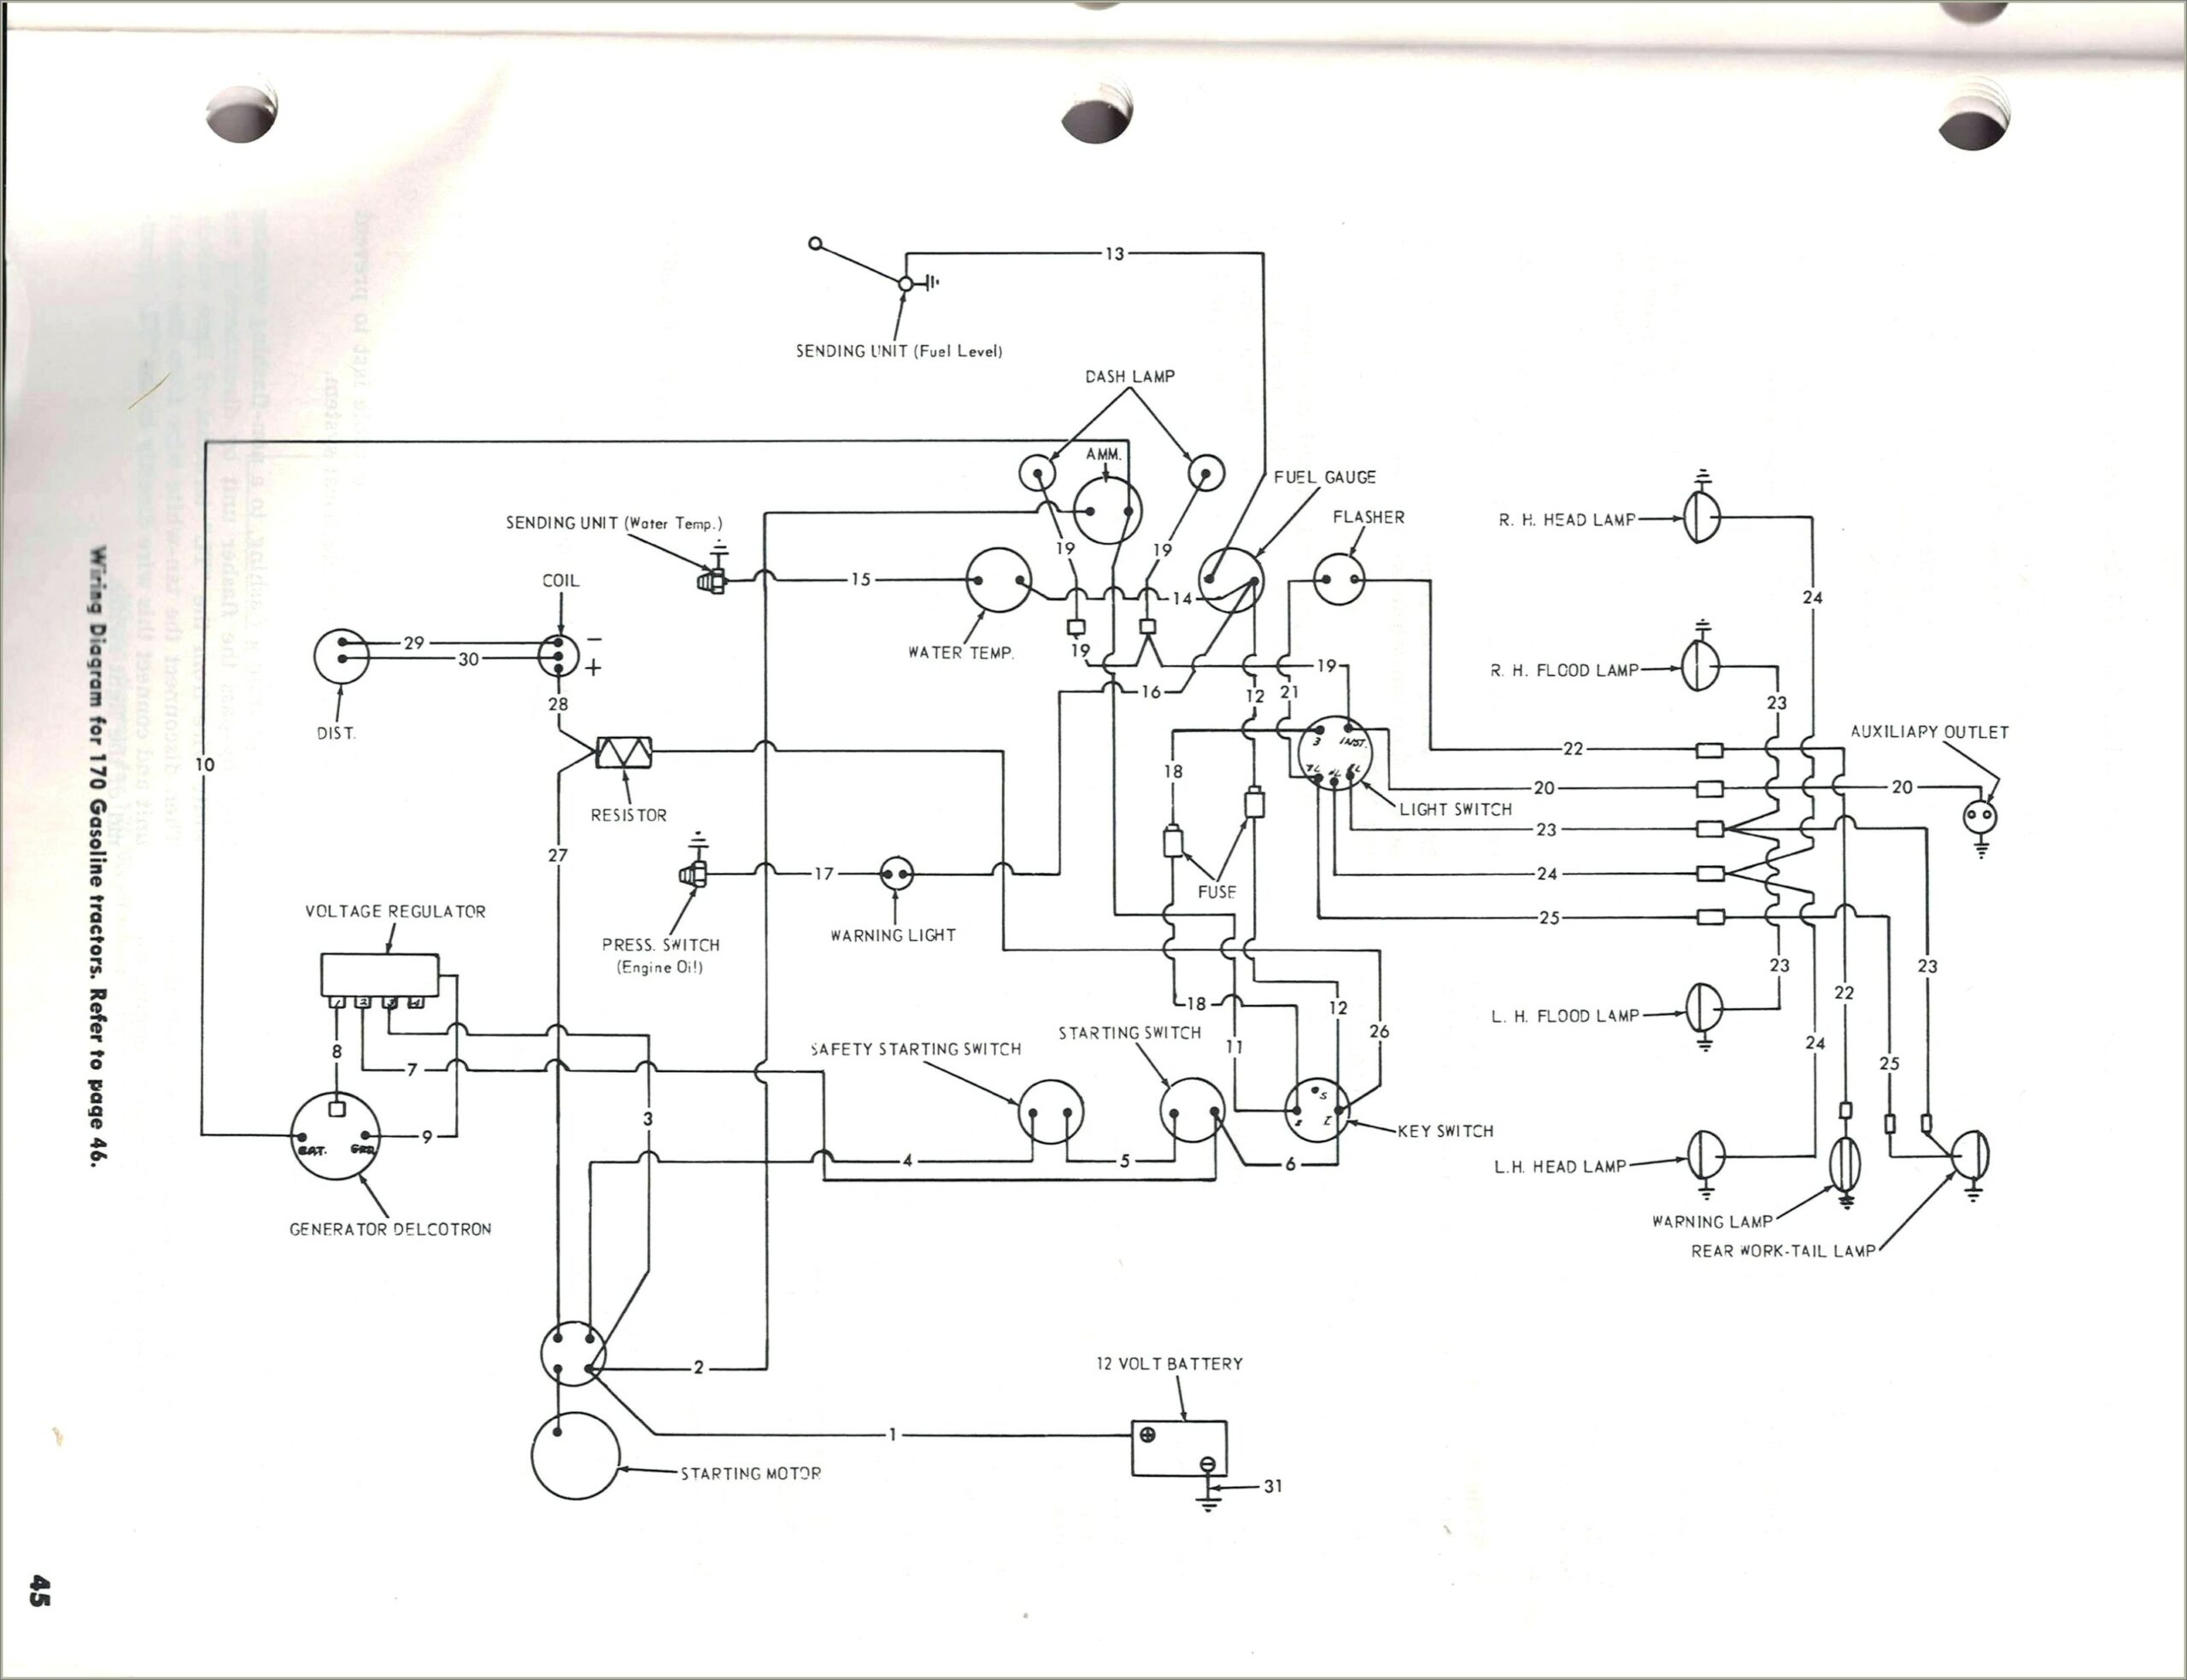 Wiring Diagram For 8n Ford Tractor